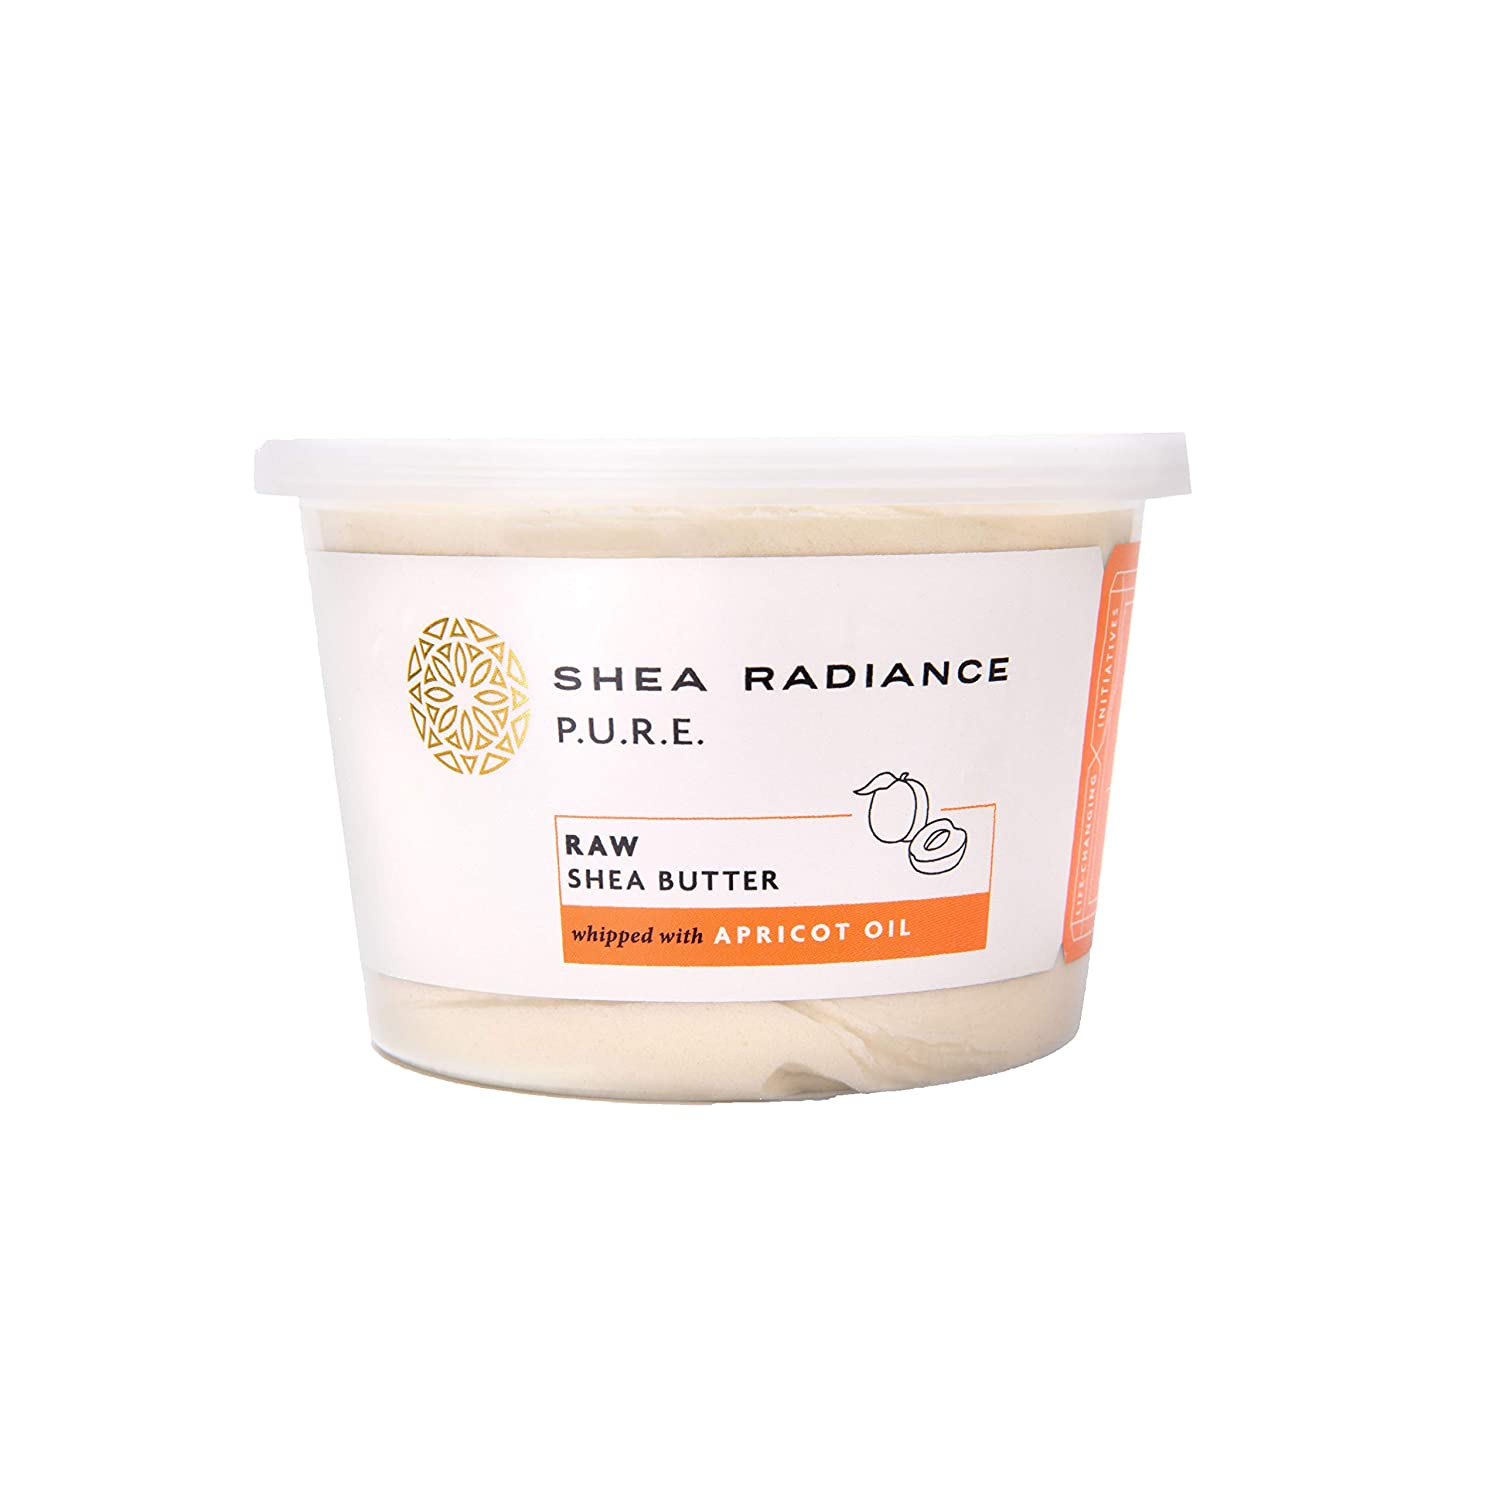 Shea Radiance Unrefined Organic Handcrafted Shea Butter - Face, Body, Hand, Skin & Hair Moisturizer - For all Skin Types | Apricot Oil (9oz)